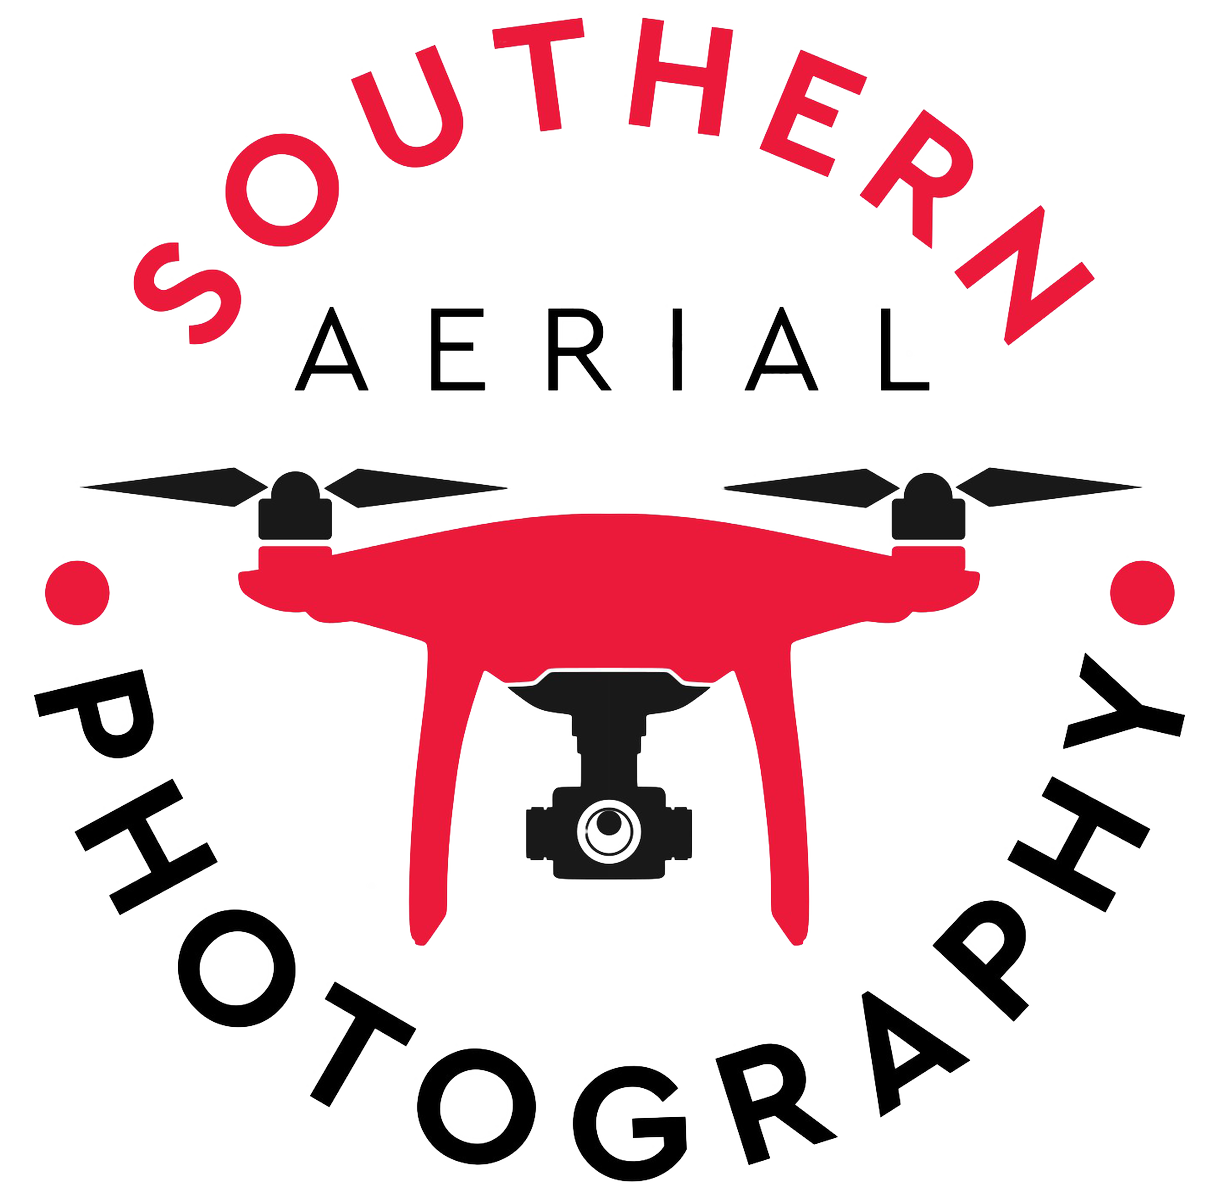 Southern Aerial Photography, LLC